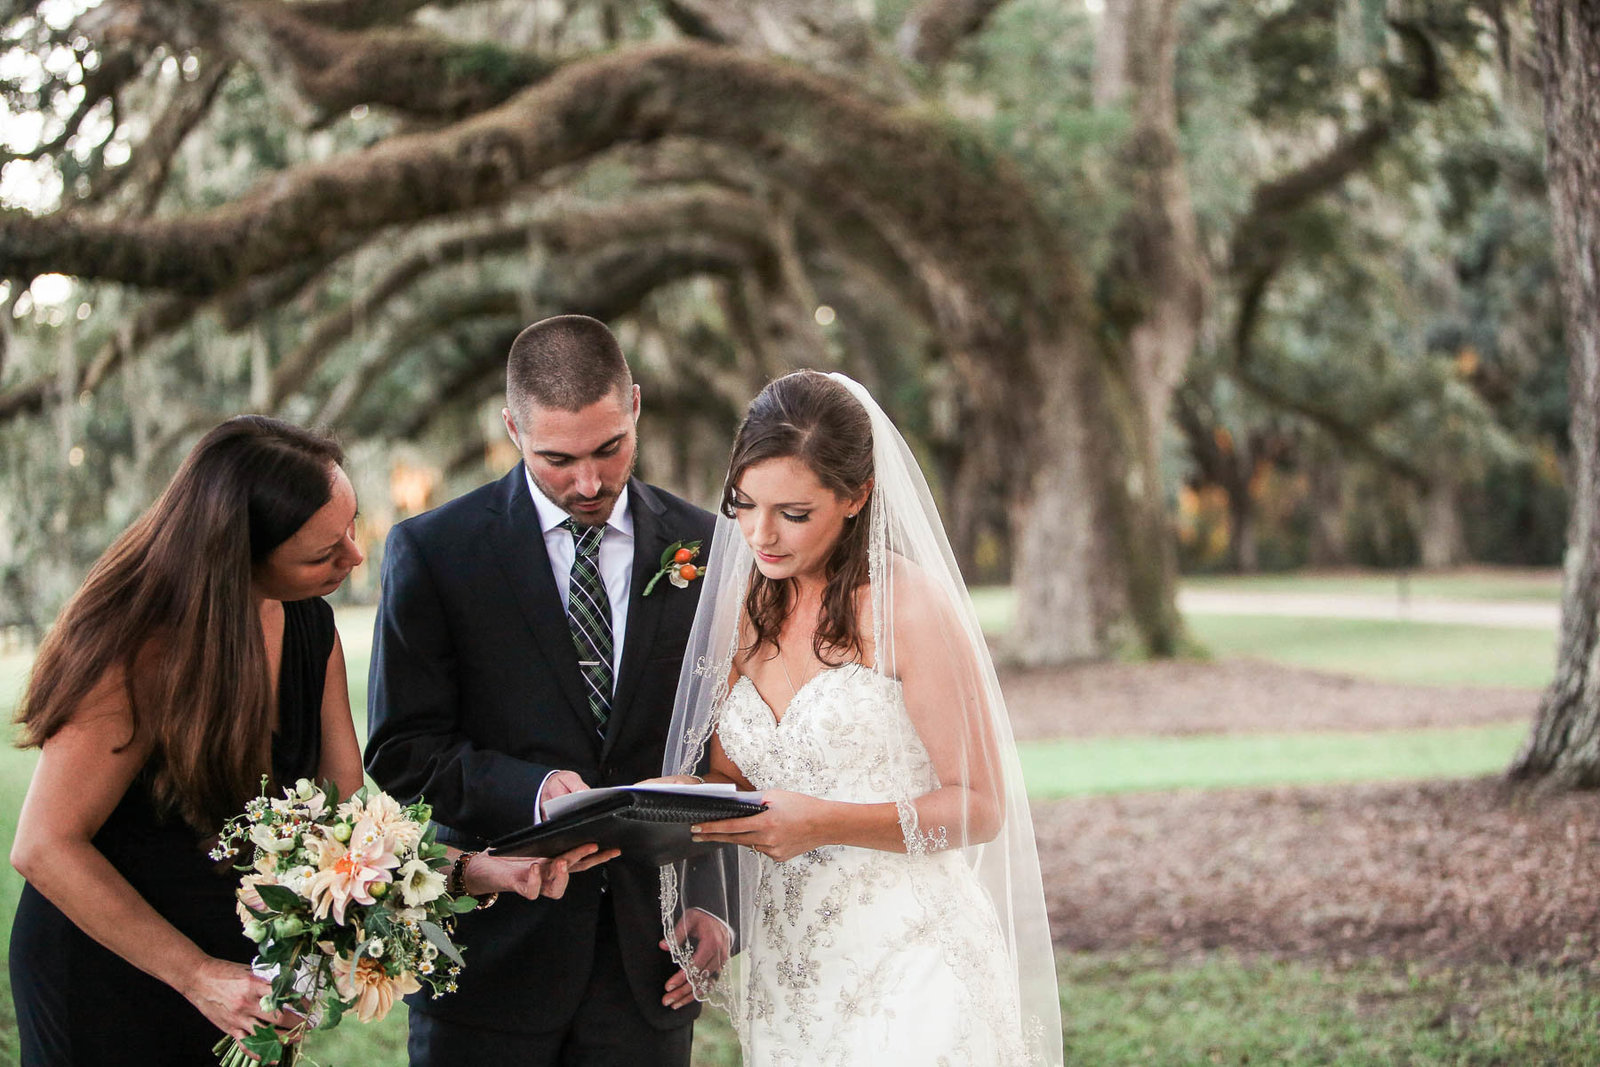 Bride and groom sign marriage license at Avenue of Oaks, Boone Hall Plantation, Charleston, South Carolina